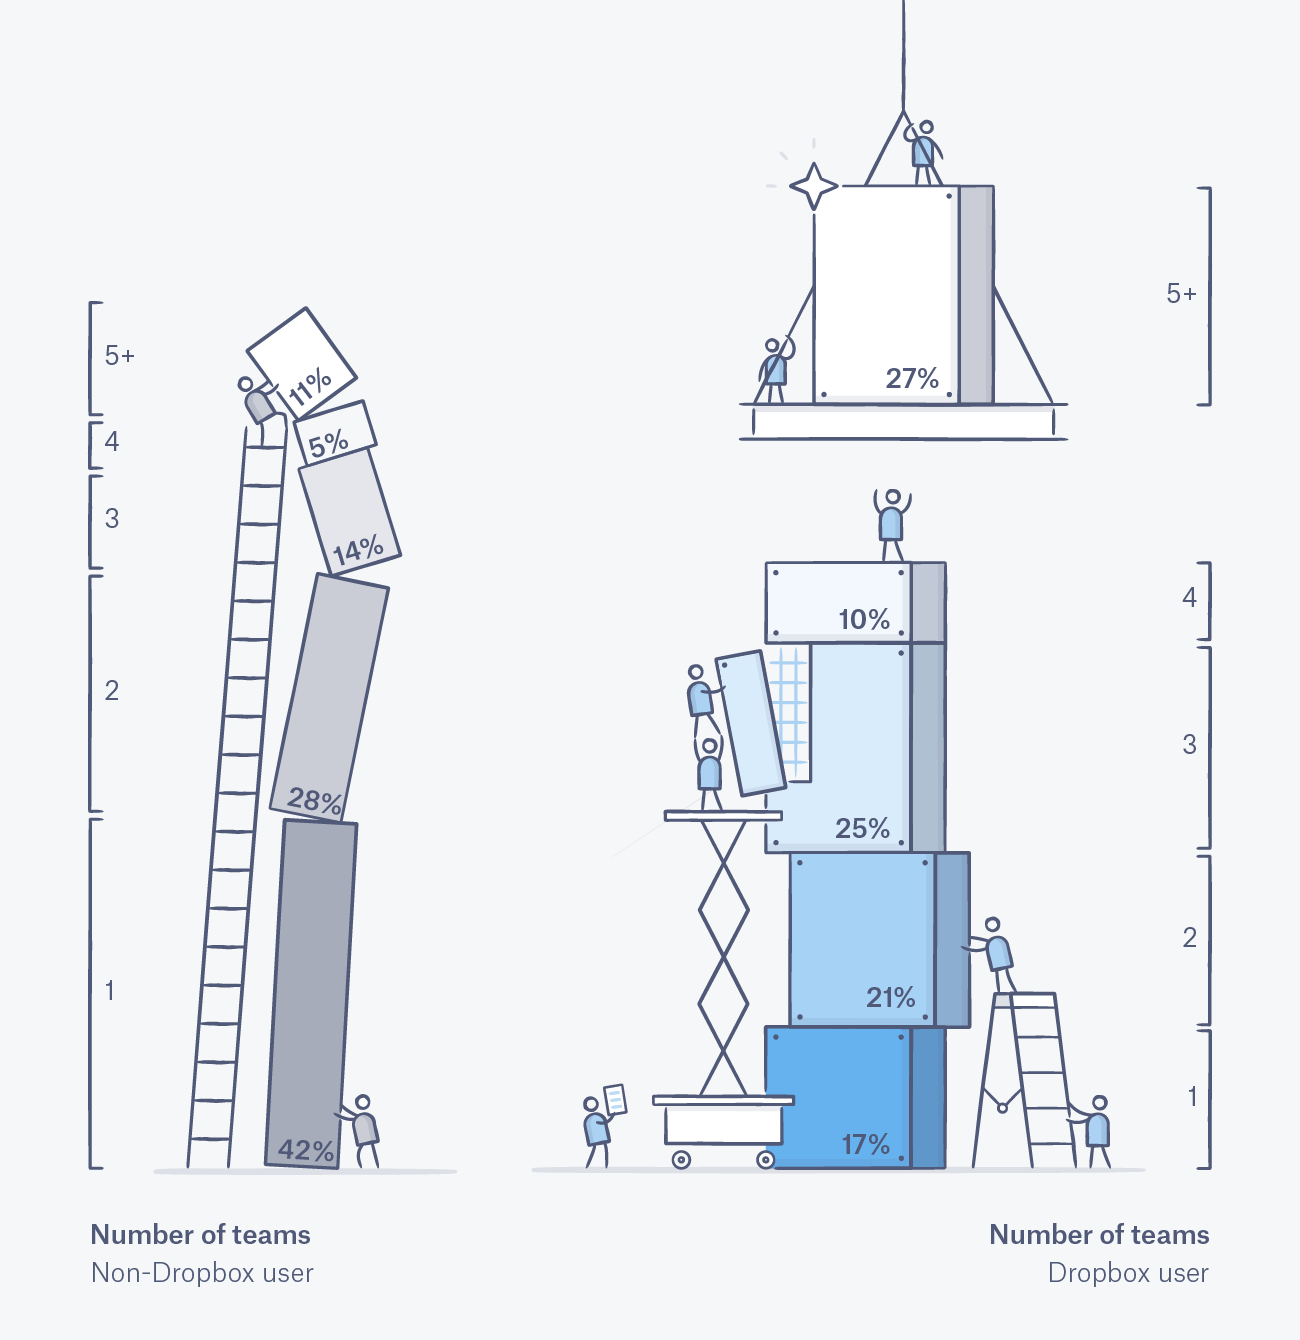 (Illustration) Number of teams (Non-Dropbox user): 5+: 11% | 4: 5% | 3: 14% | 2: 28% | 1: 42% / Number of teams (Dropbox user): 5+: 27% | 4: 10% | 3: 25% | 2: 21% | 1: 17%